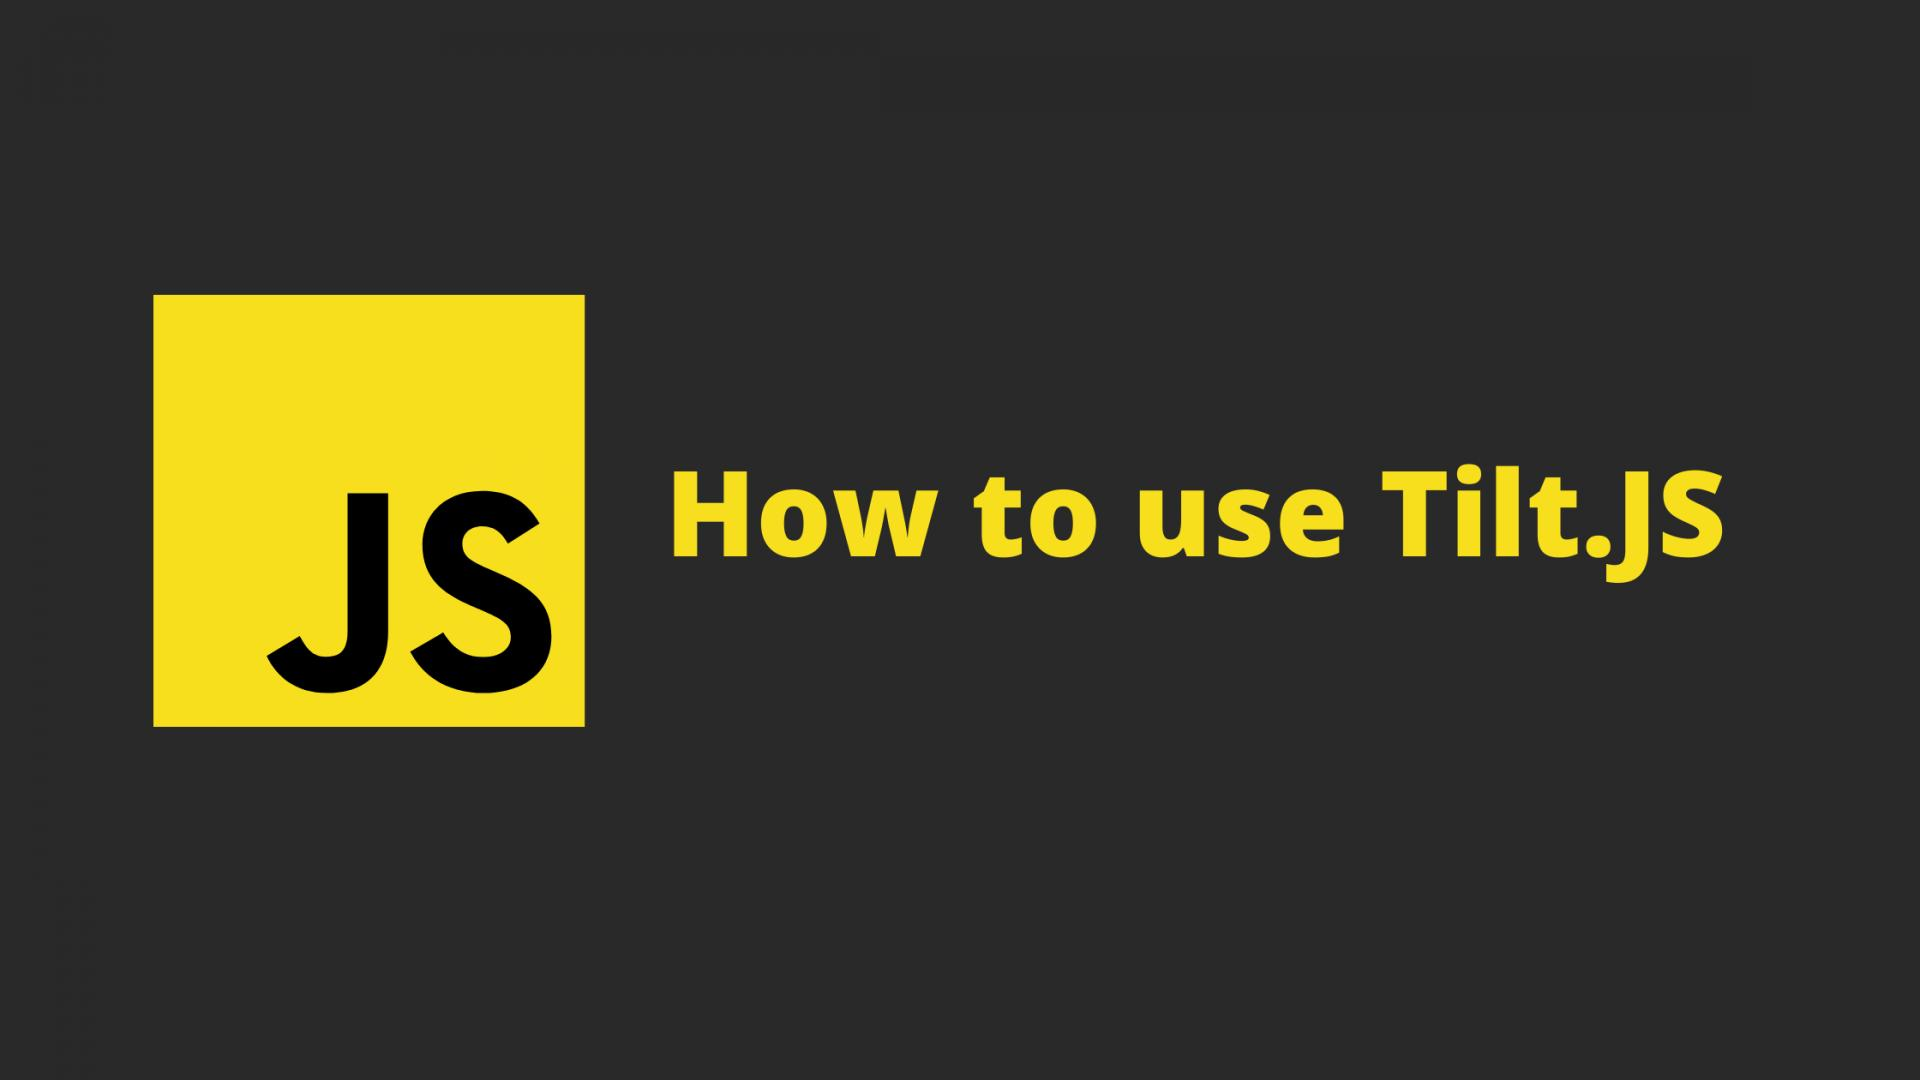 How to use tilt.js to create a 3d effect on your elements